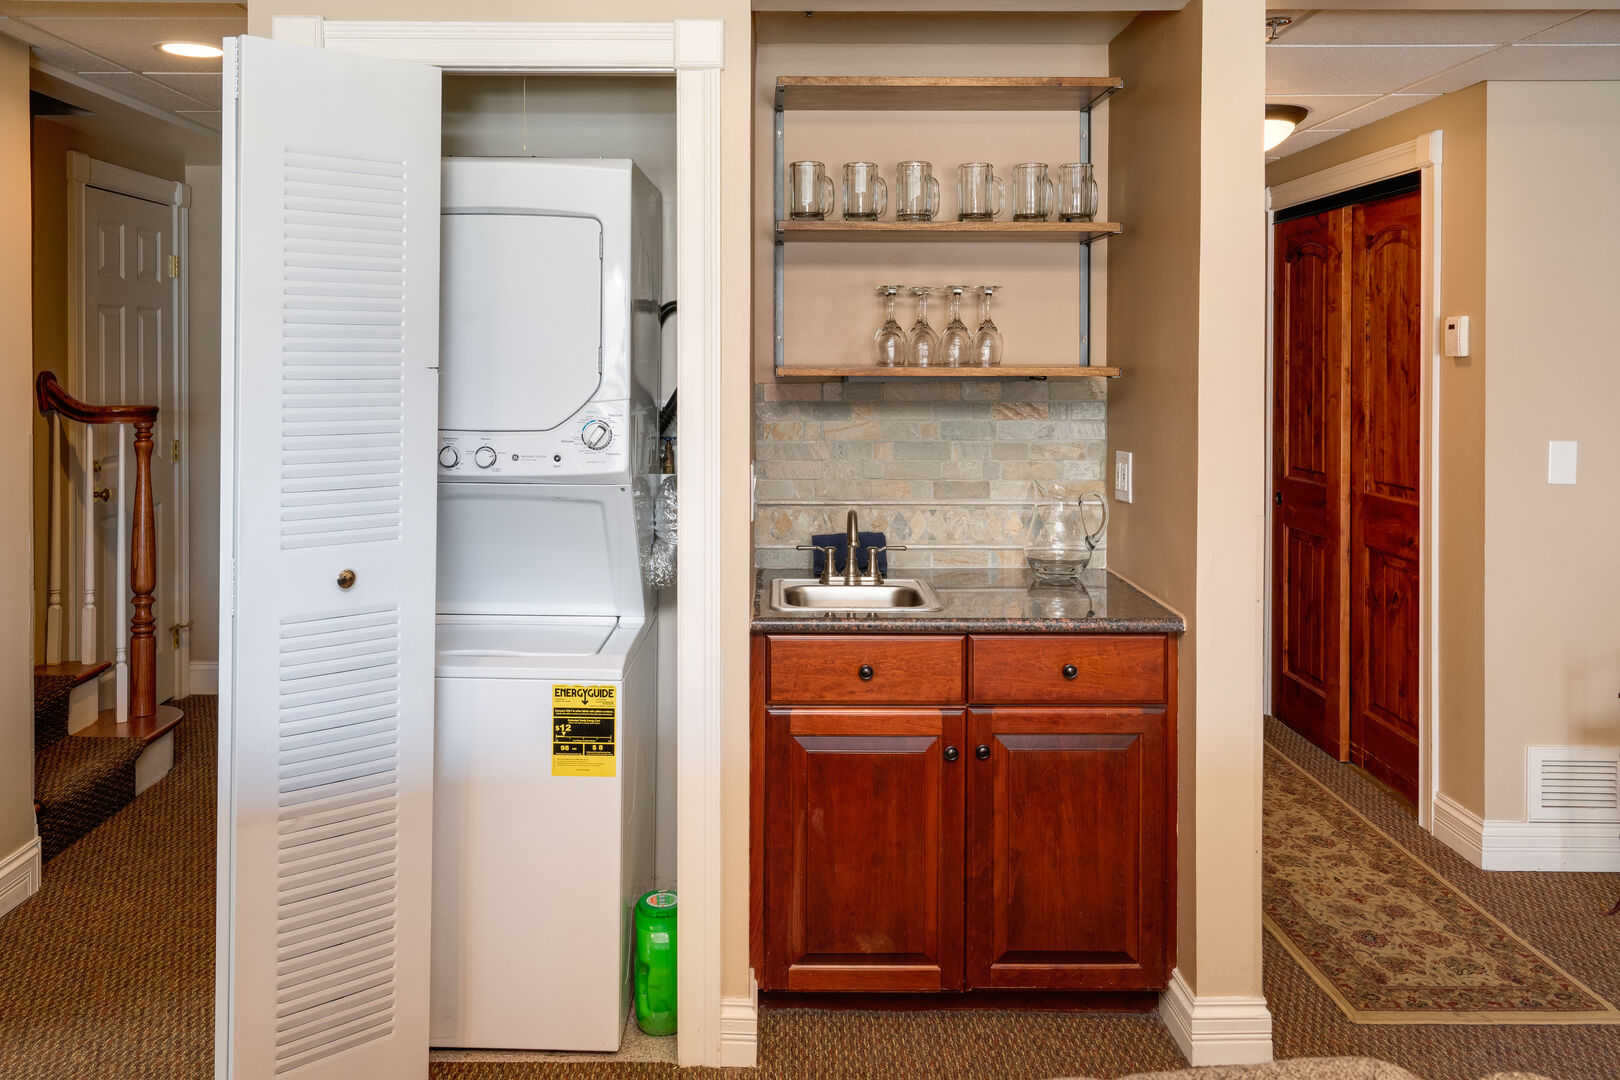 Washer and dryer behind the accordion door, Dedicated wet bar for happy hour.